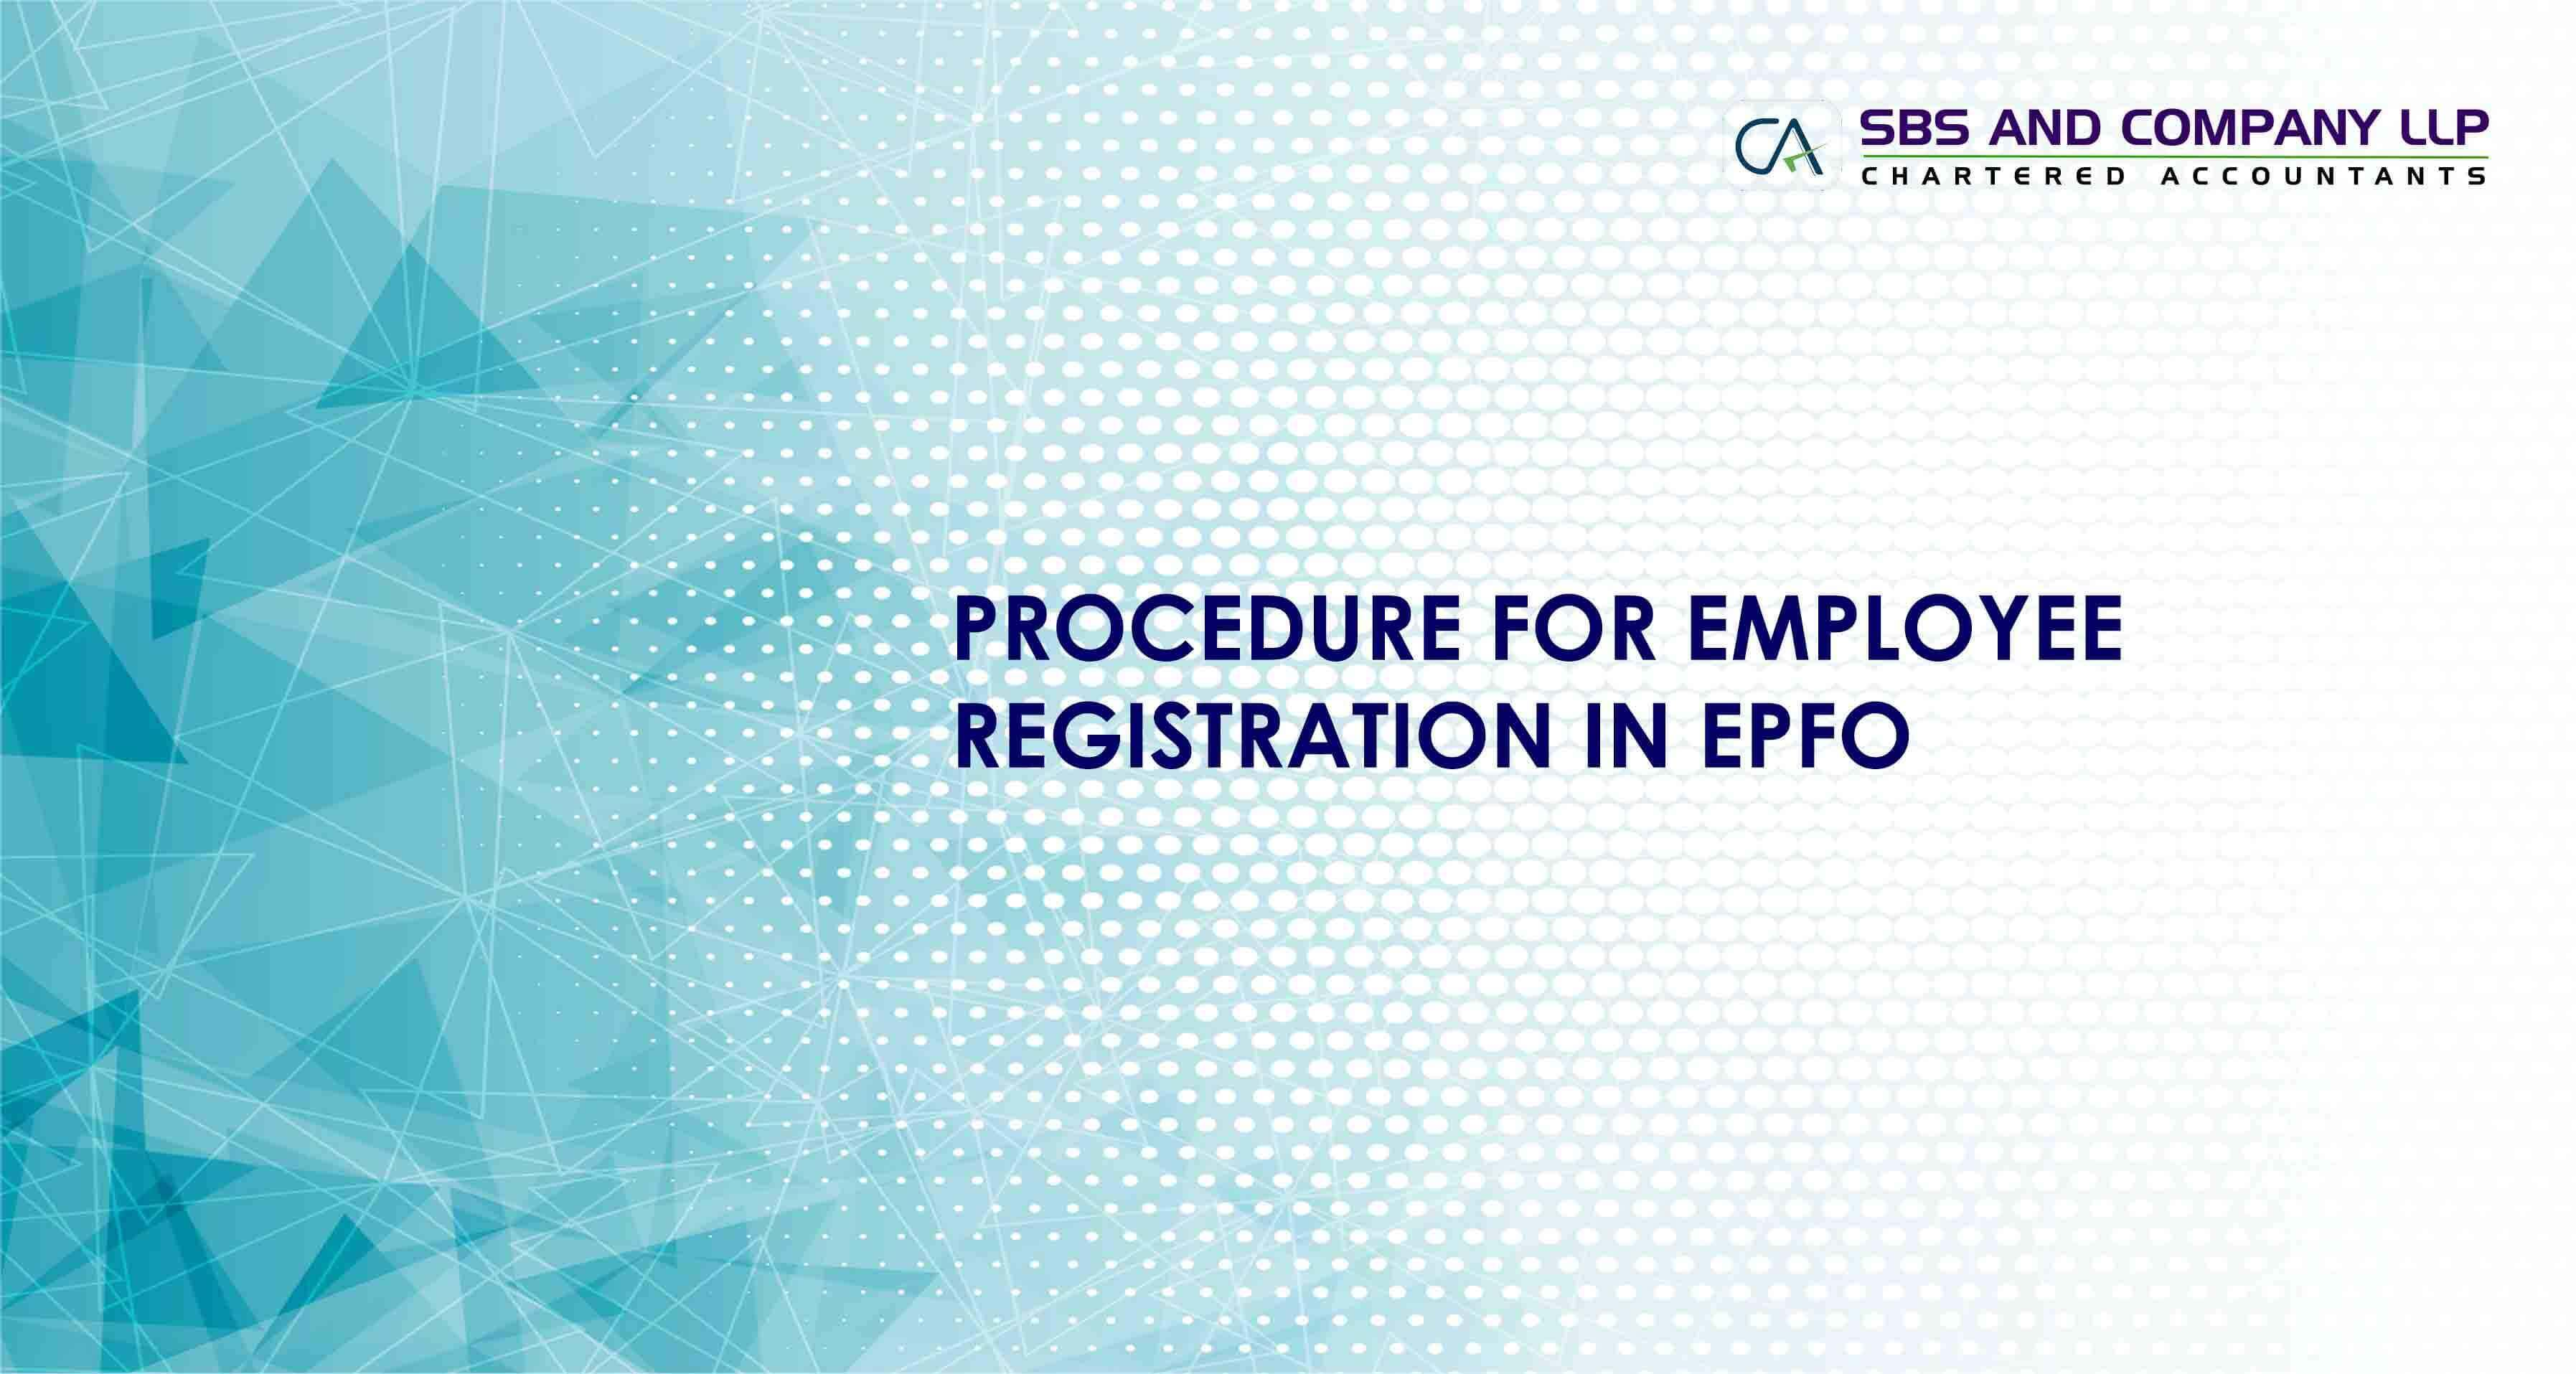 PROCEDURE FOR EMPLOYEE REGISTRATION IN EPFO